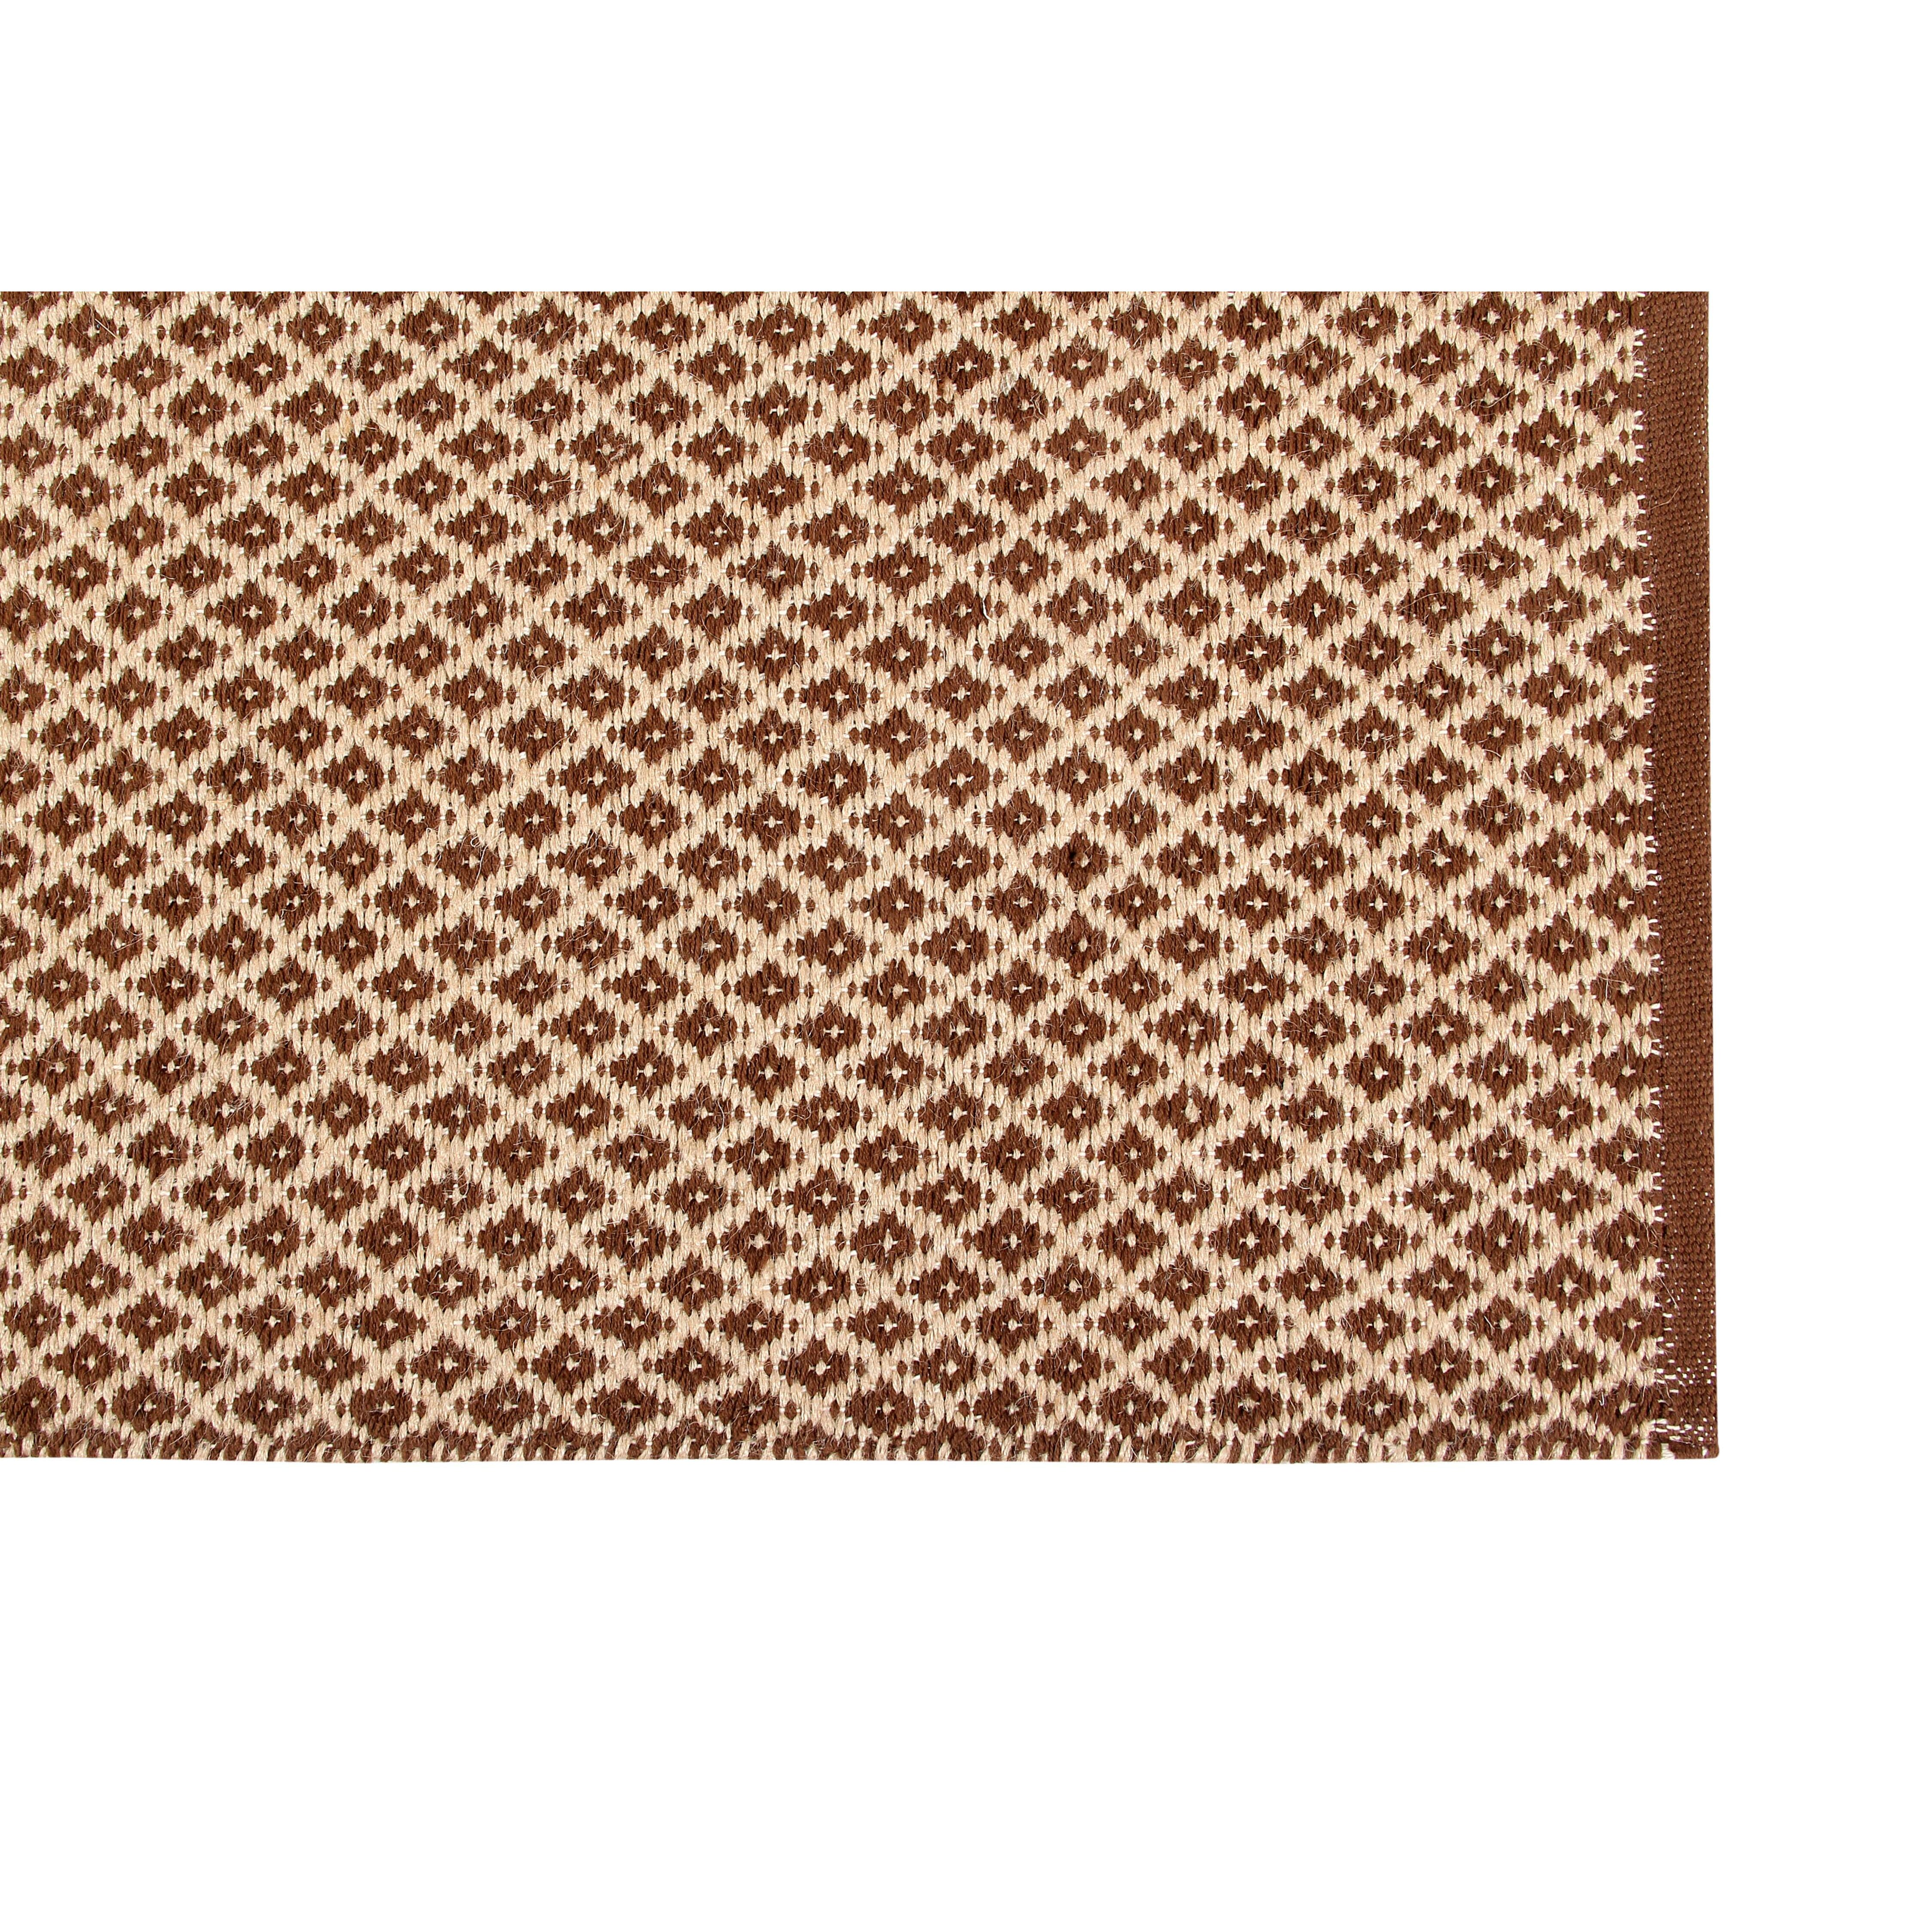 Cozy Home And Bath Hand Woven Area Rug Reviews